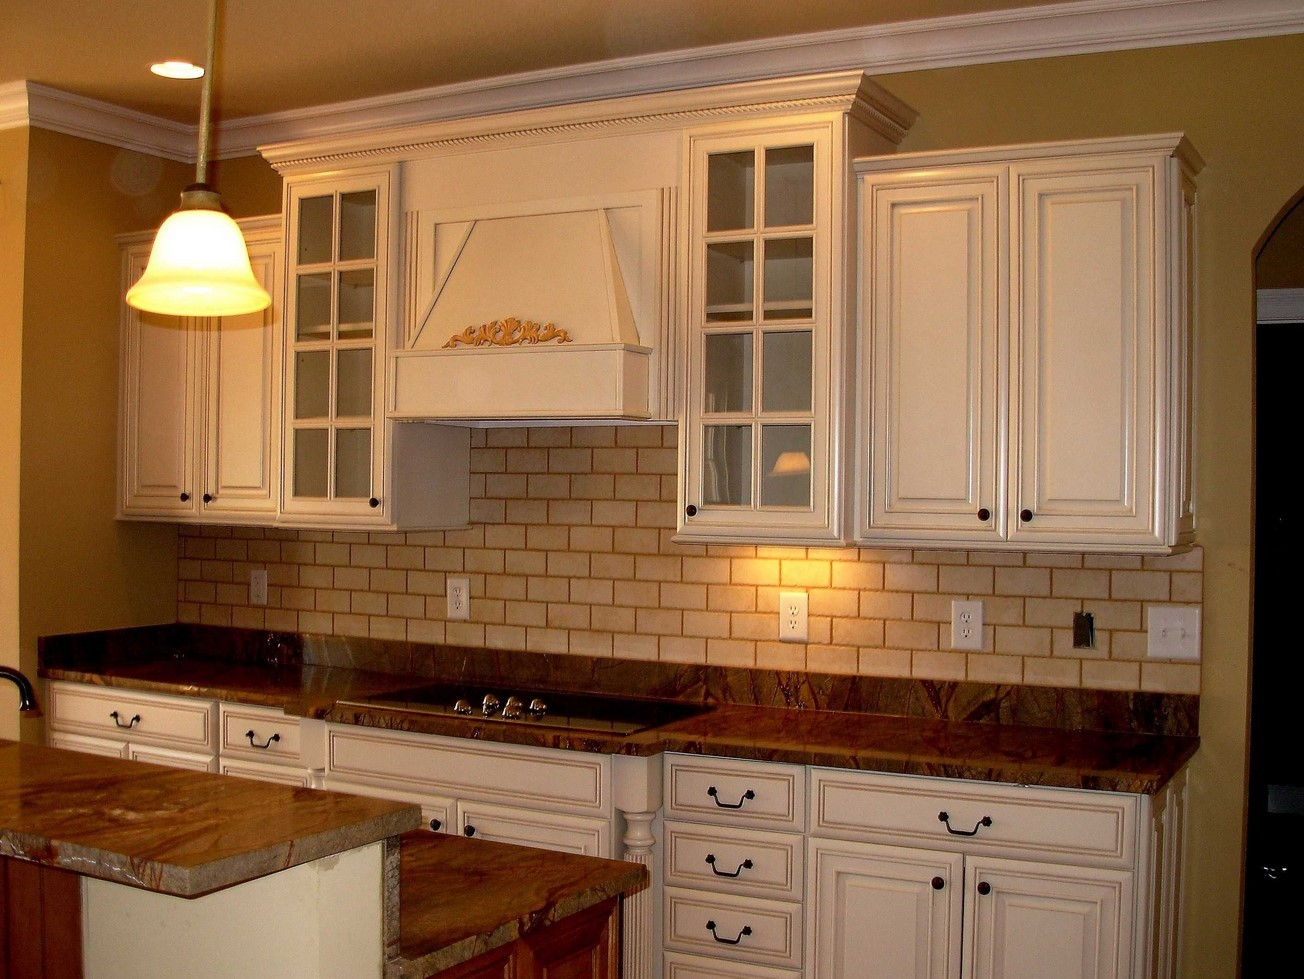 How To Prep Kitchen Cabinets For Painting How To Paint Kitchen Cabinets To Look Antique Top Home